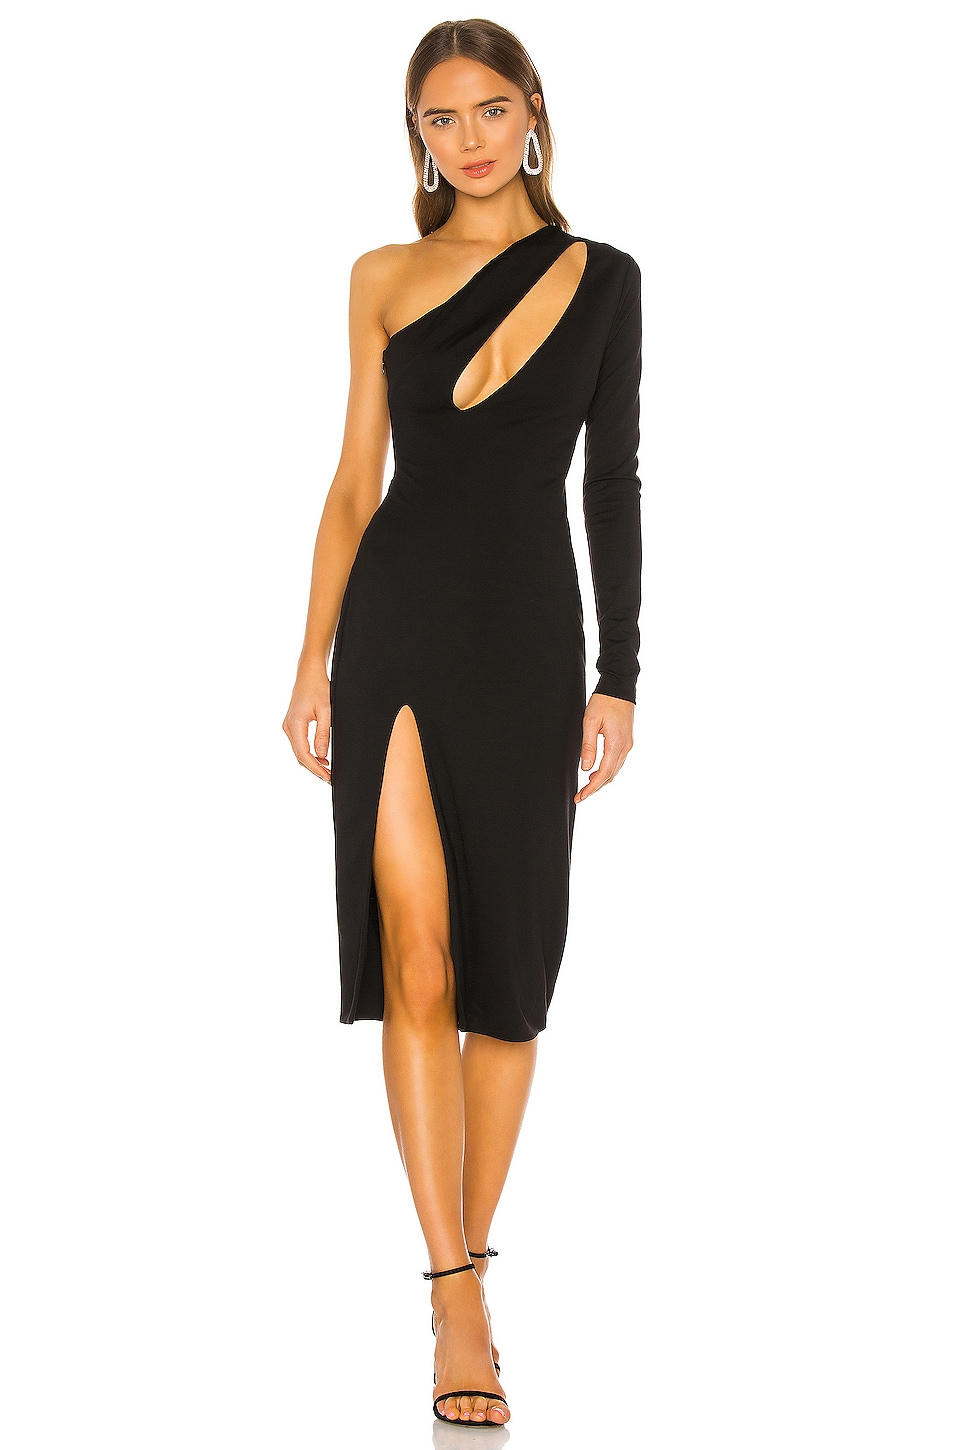 h:ours Pagne Midi Dress in Black